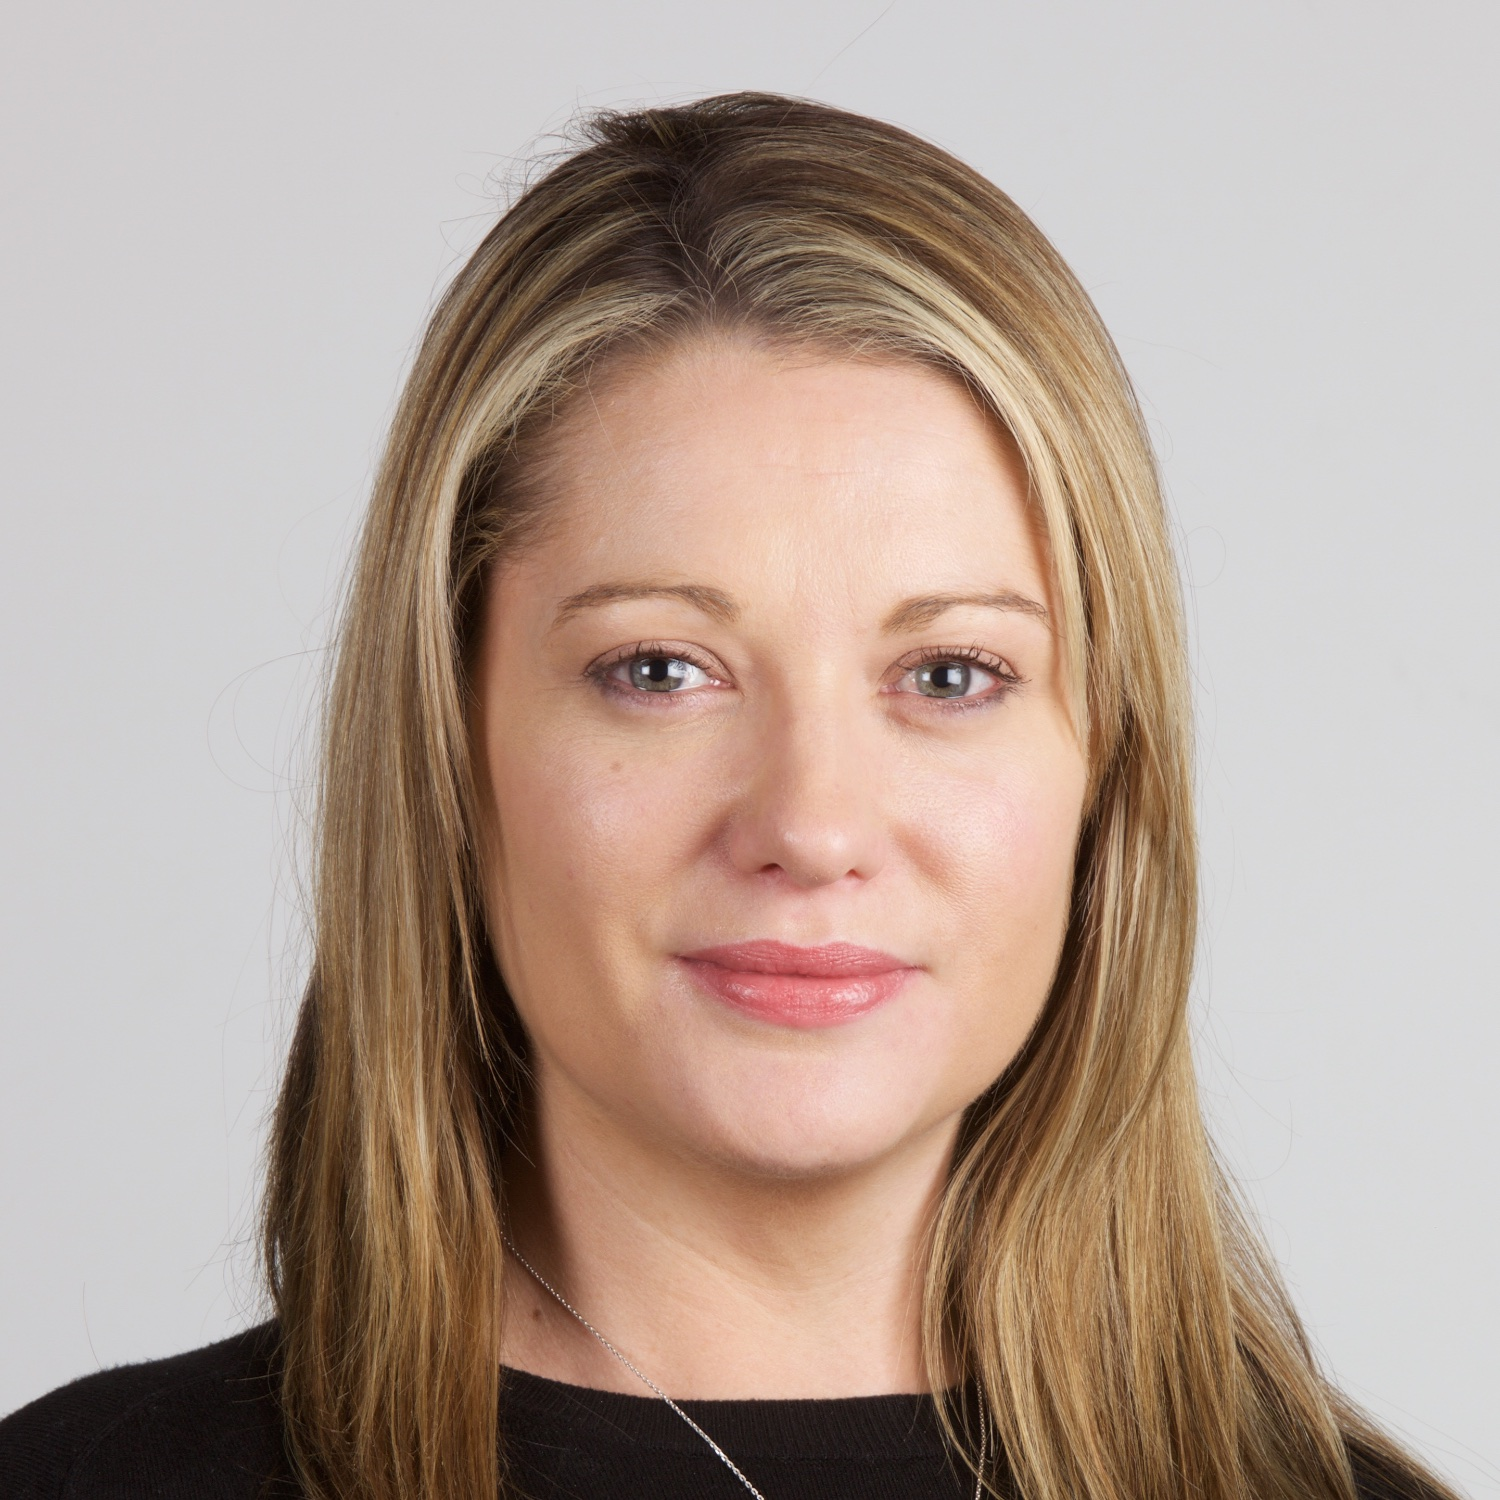 Linkedin Profile Headshot Photos in Dublin, Ireland.